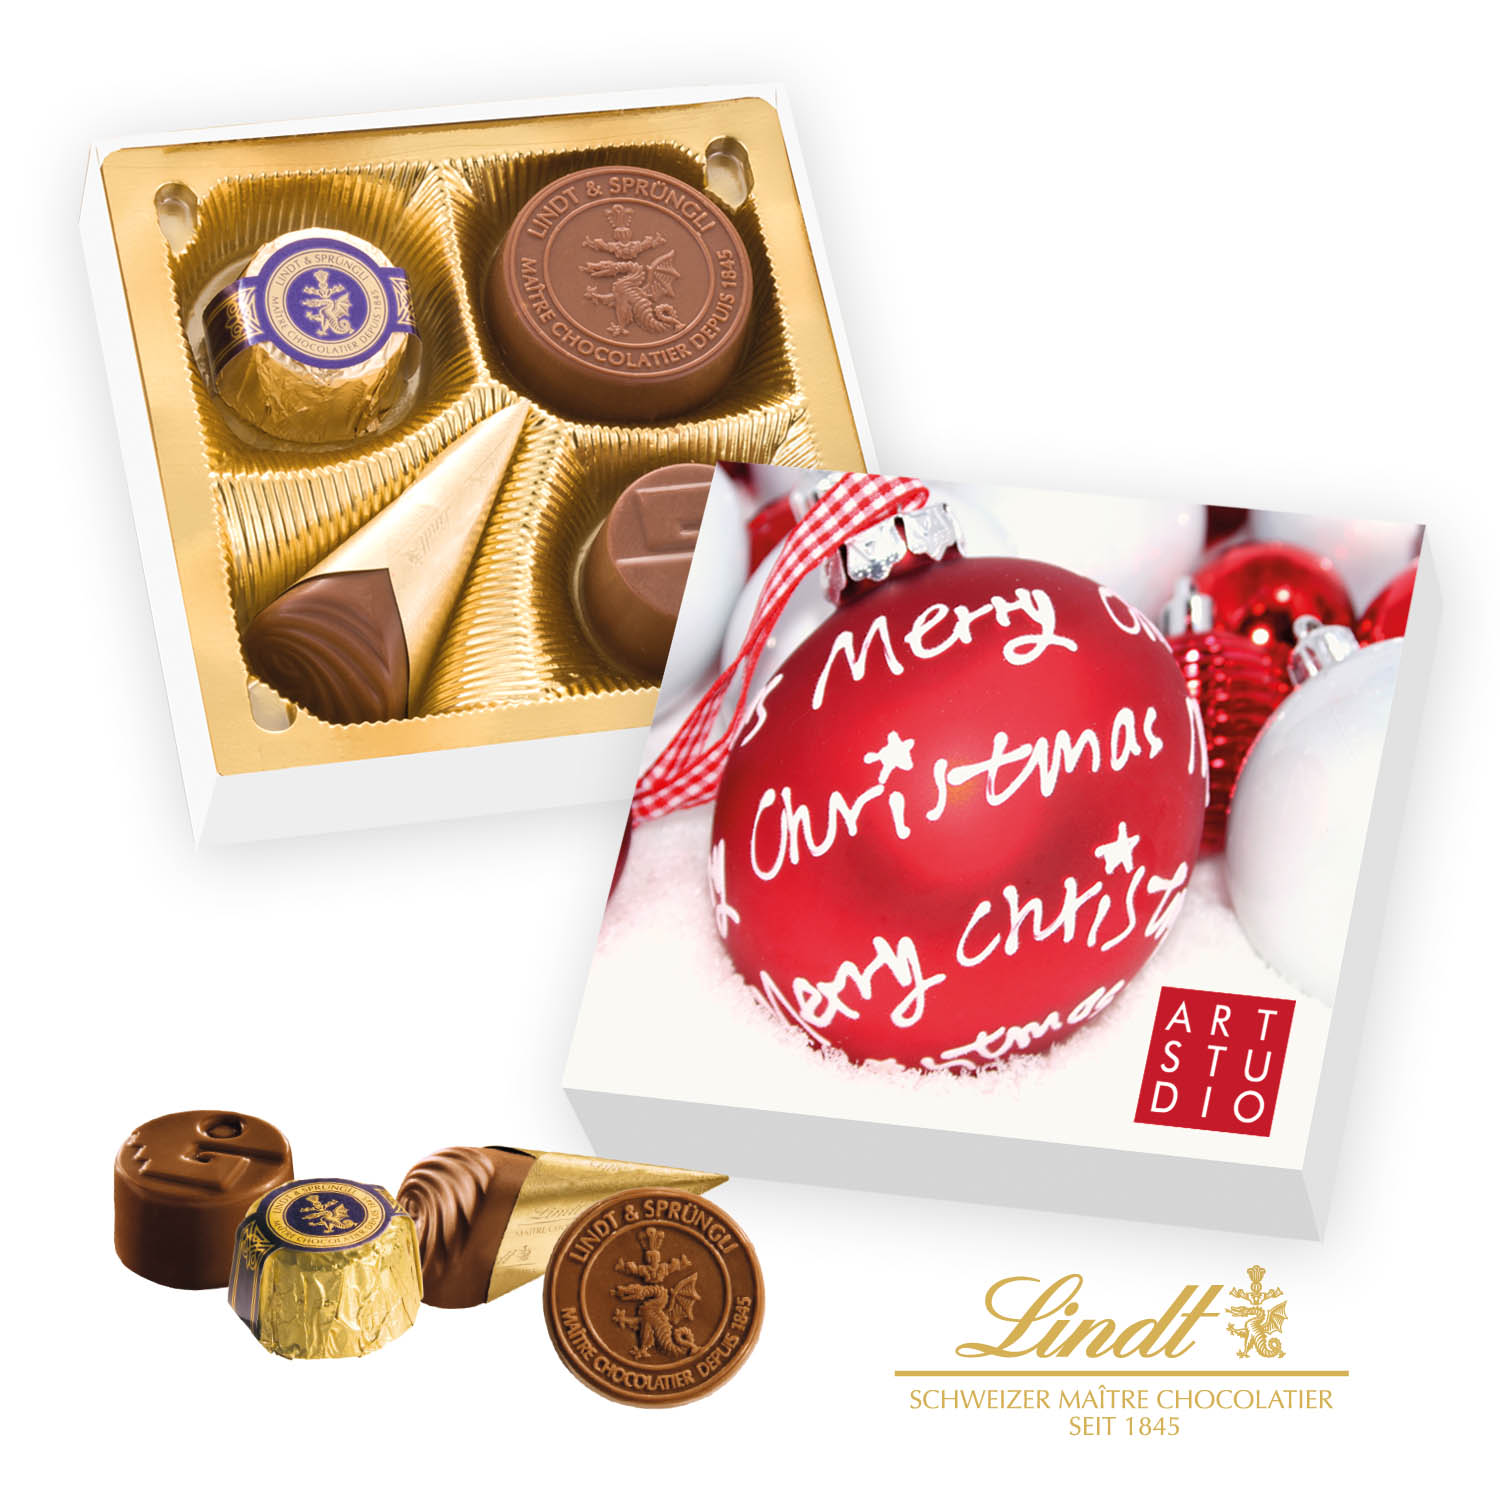 Personalised Lindt 4 Chocolate Gift Box Boxes Lindor Dark